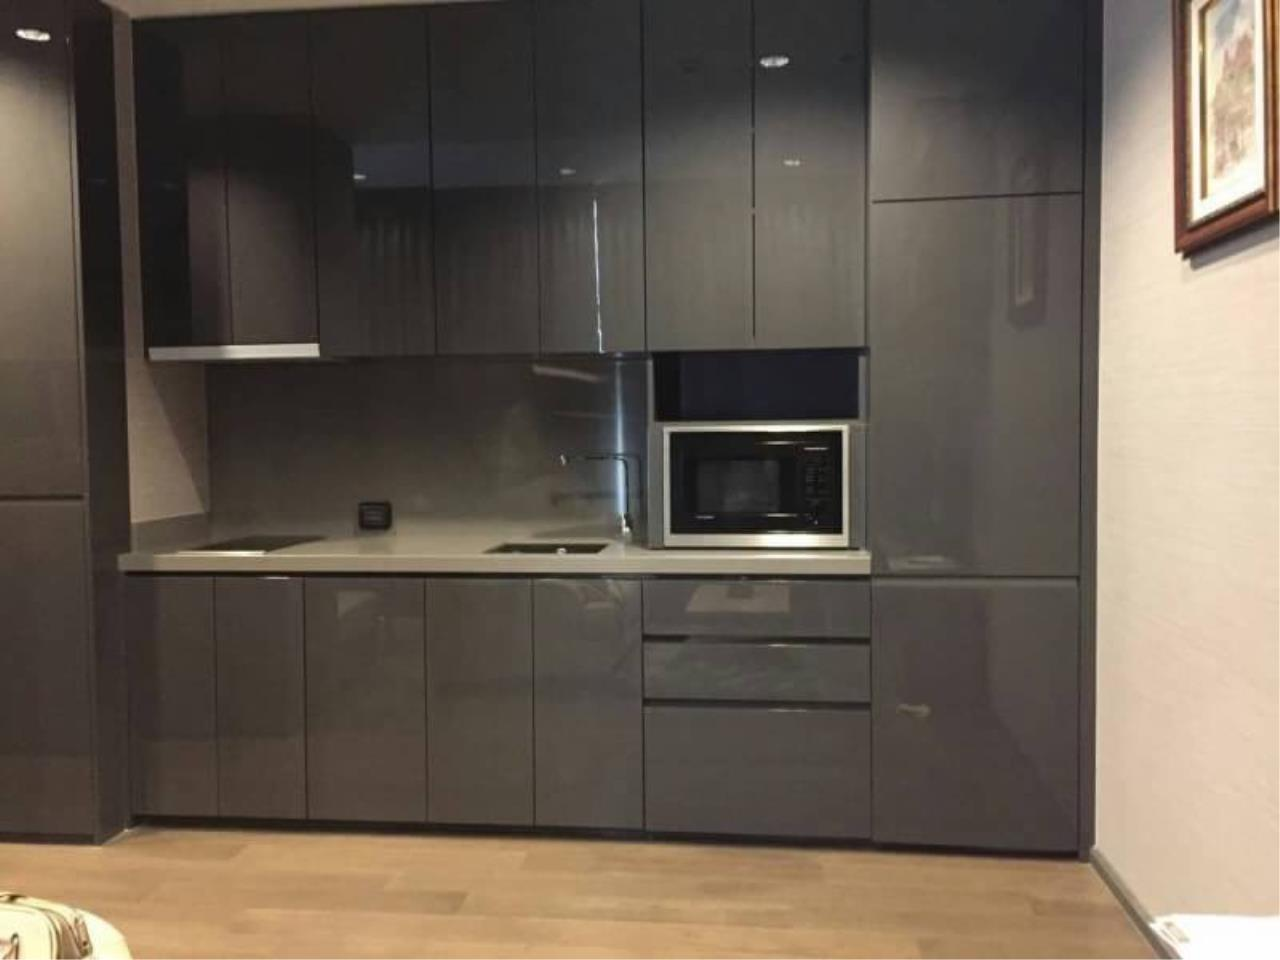 RE/MAX All Star Realty Agency's The Diplomat Sathorn large one bed for sale (BTS Chong Nonsi) 7